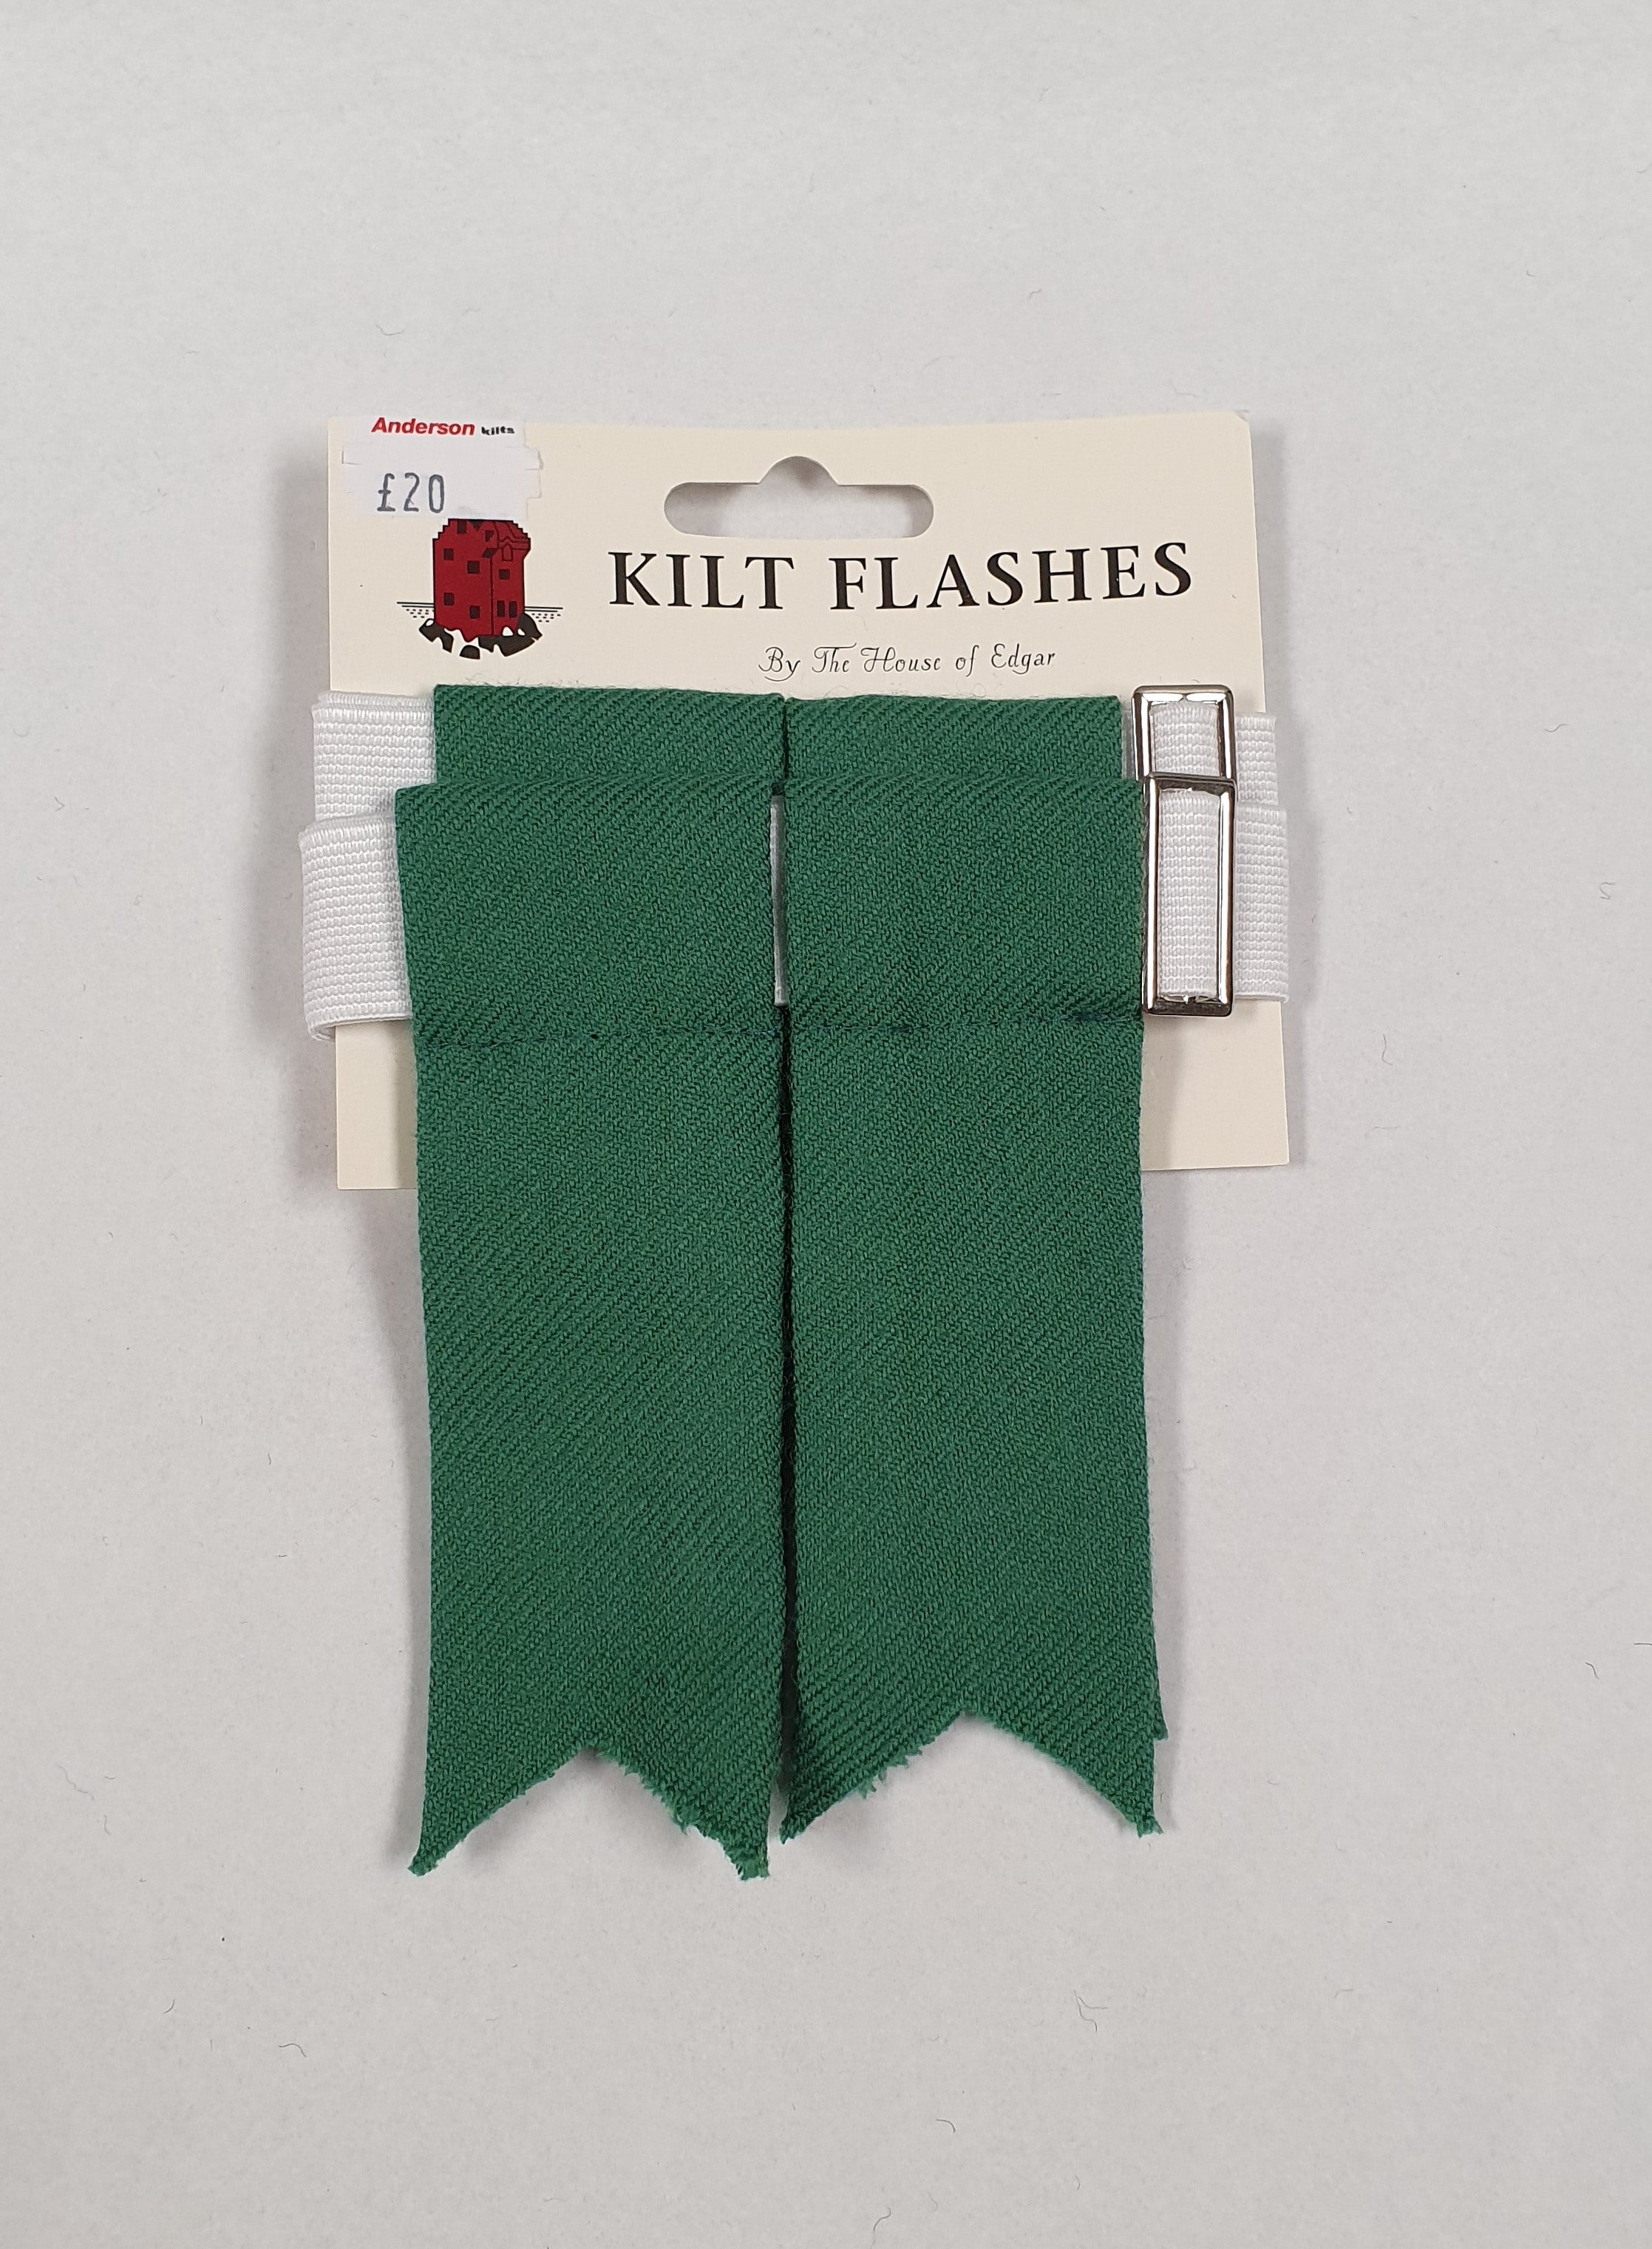 Flower of Scotland Green Flashes - Anderson Kilts